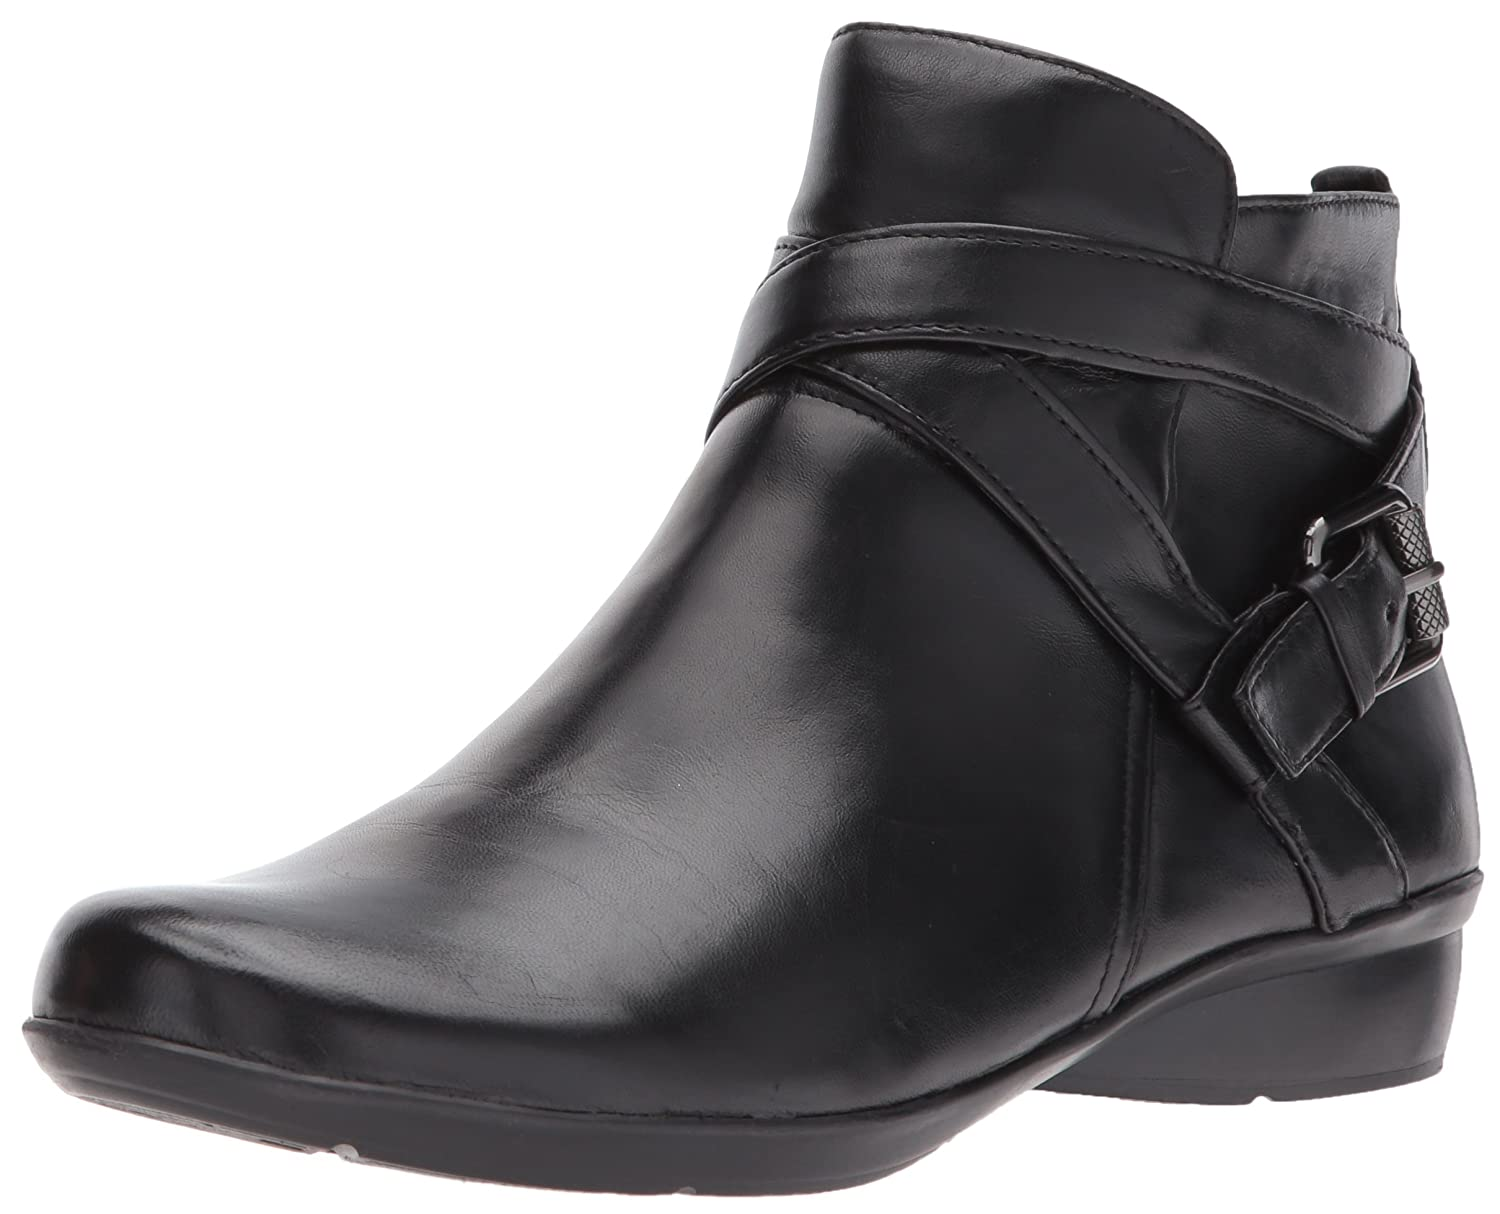 Naturalizer Women's Cassandra Ankle Bootie B06WP6GFG2 8 N US|Black